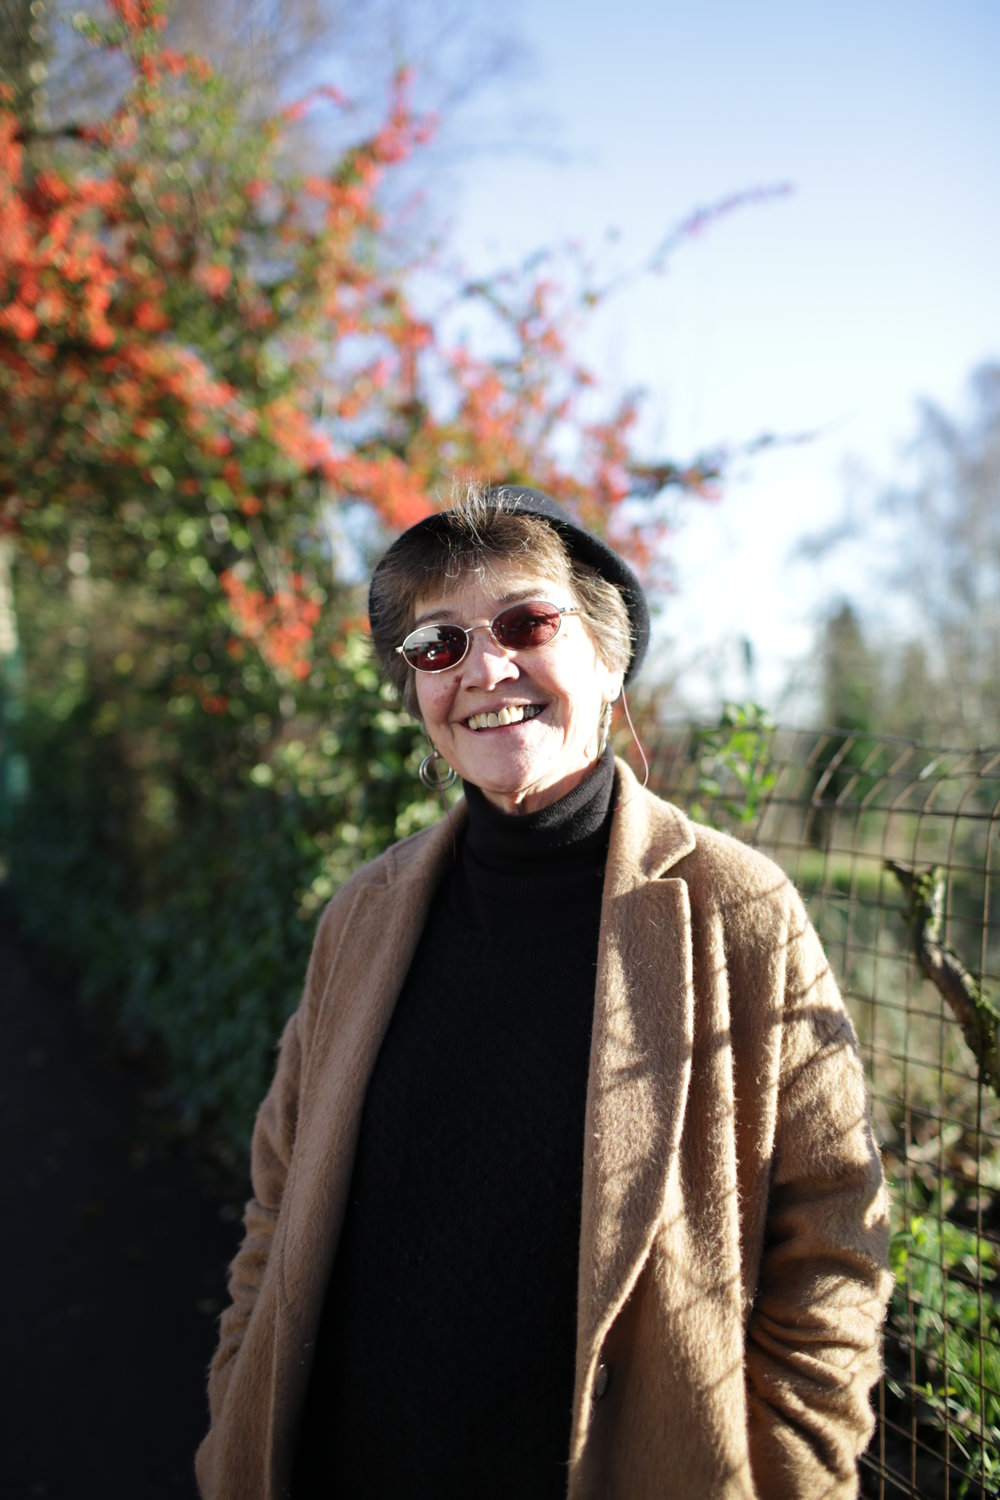 The light is just beautiful today and so is Angie. Such a lovely smile. Angie lives nearby and was out for a wintery walk